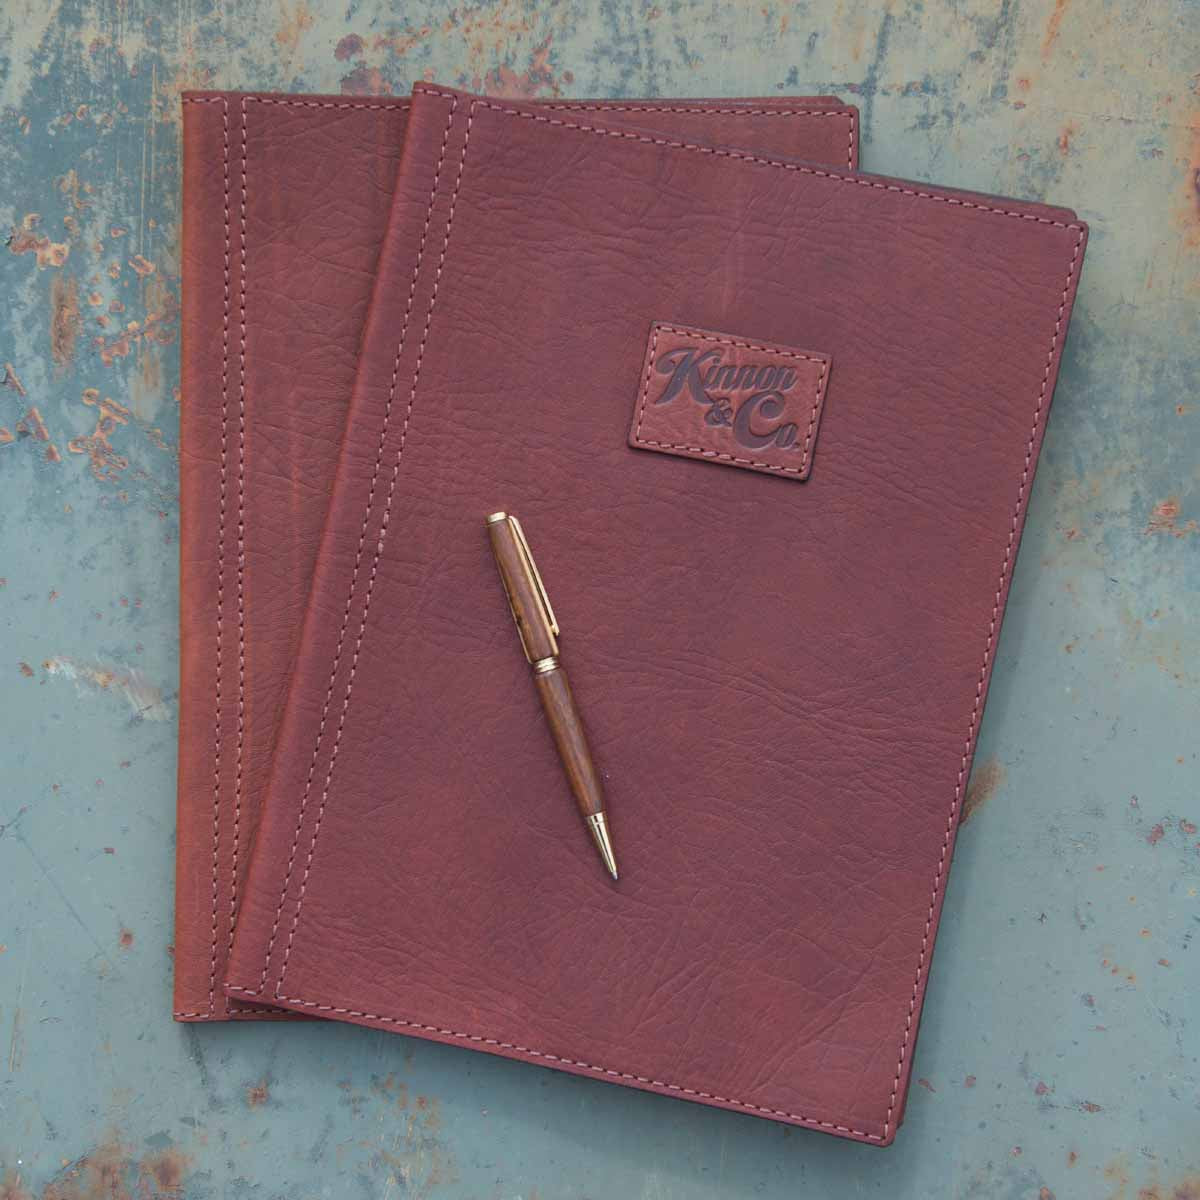 Kinnon & Co Diary Cover Leather A4 Tan